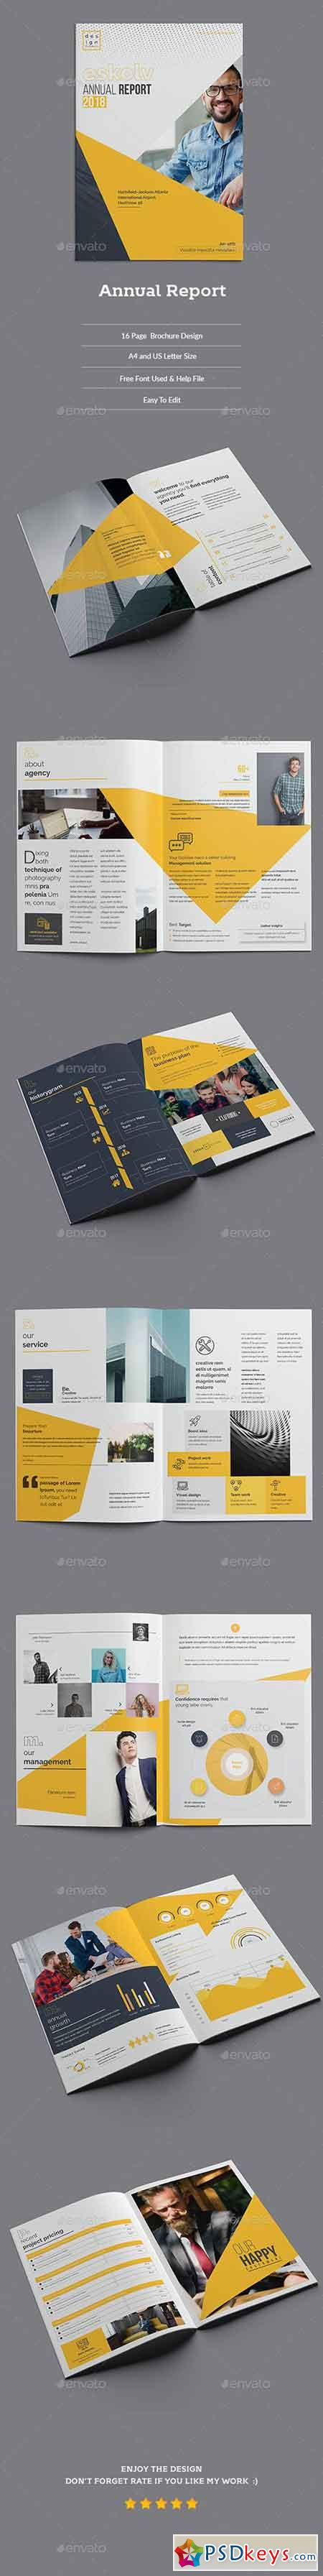 Annual Report Template 21966507